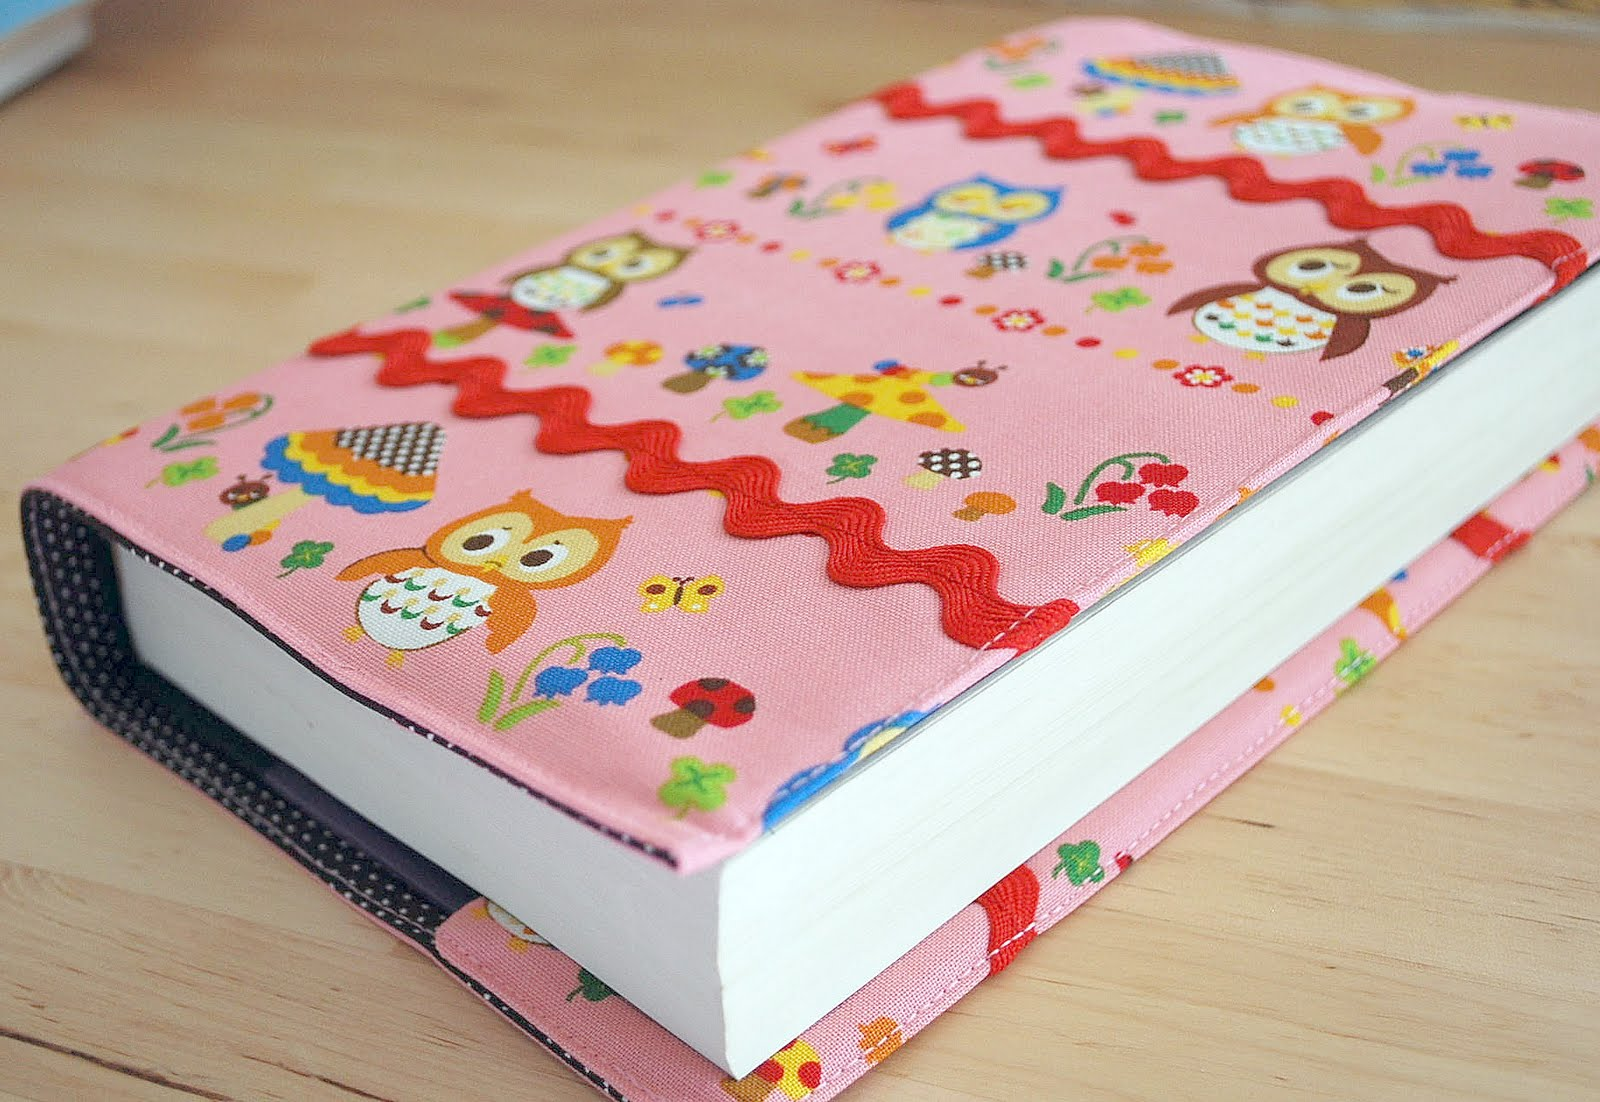 Make A Fabric Book Cover : All awesome links sew a fabric book cover